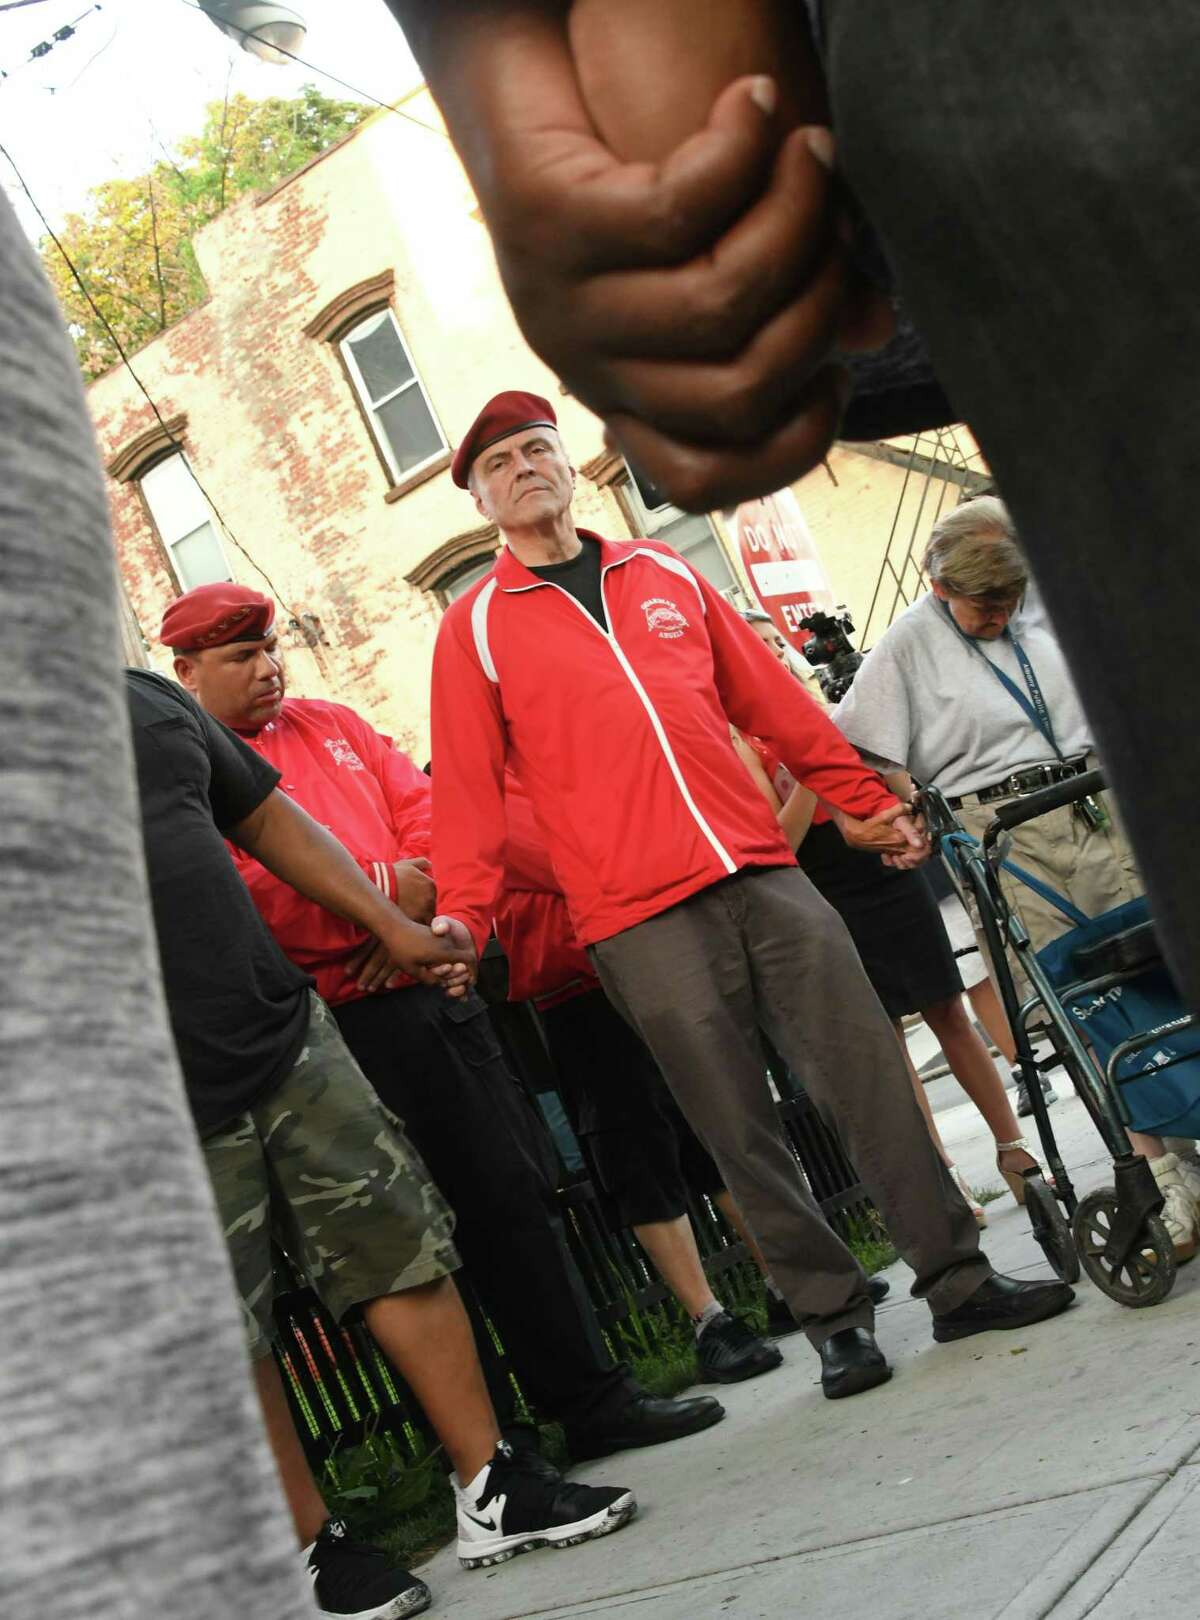 Guardian Angel Founder Curtis Sliwa, center, prays in a group per a request by a resident as people gather at the corner of Clinton and Lexington Avenues in response to the recent spate in violence on Tuesday, July 10, 2018 in Albany, N.Y. (Lori Van Buren/Times Union)